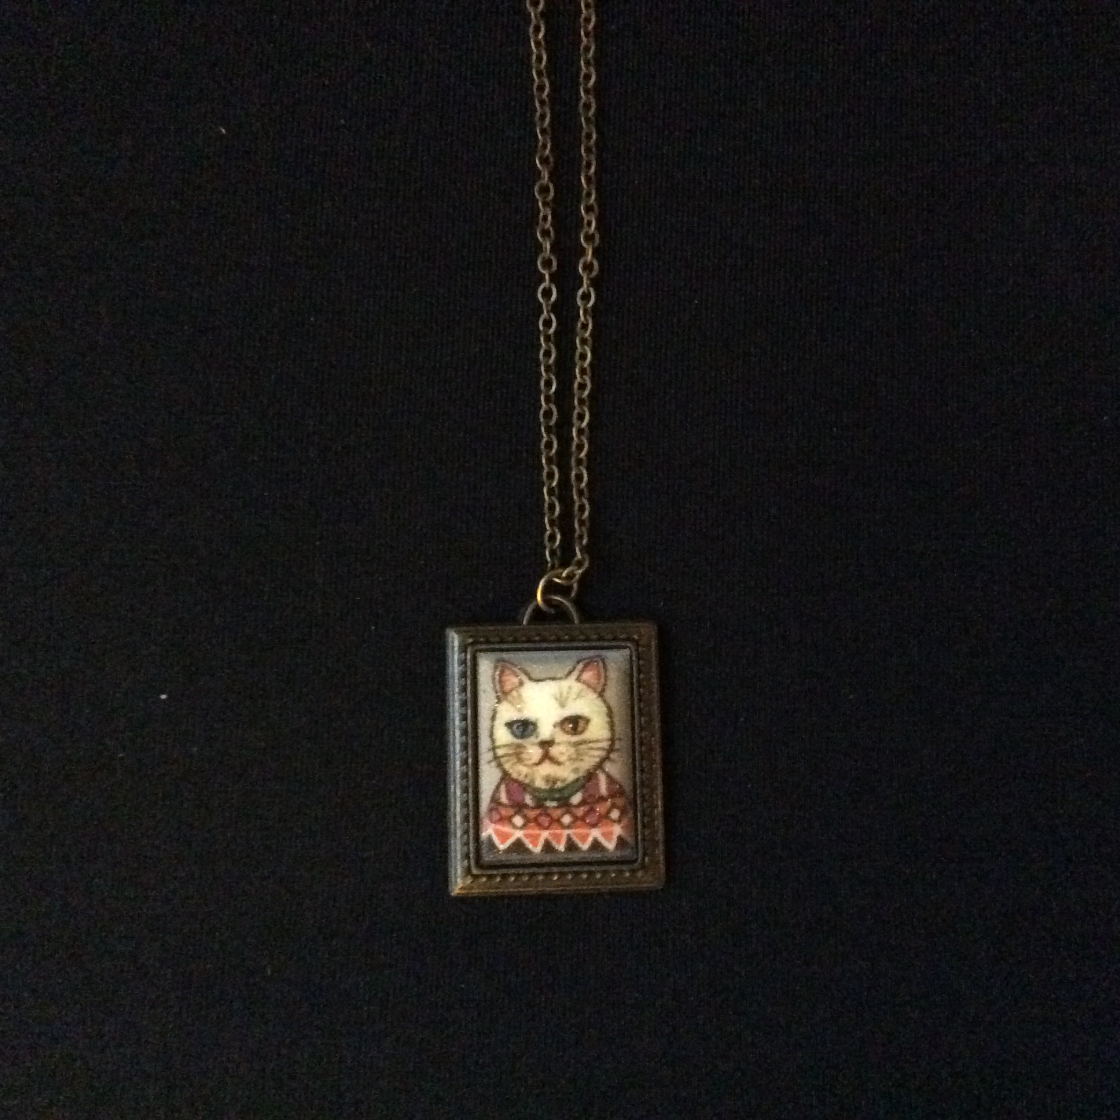 Gold Square Framed Kitty Necklace